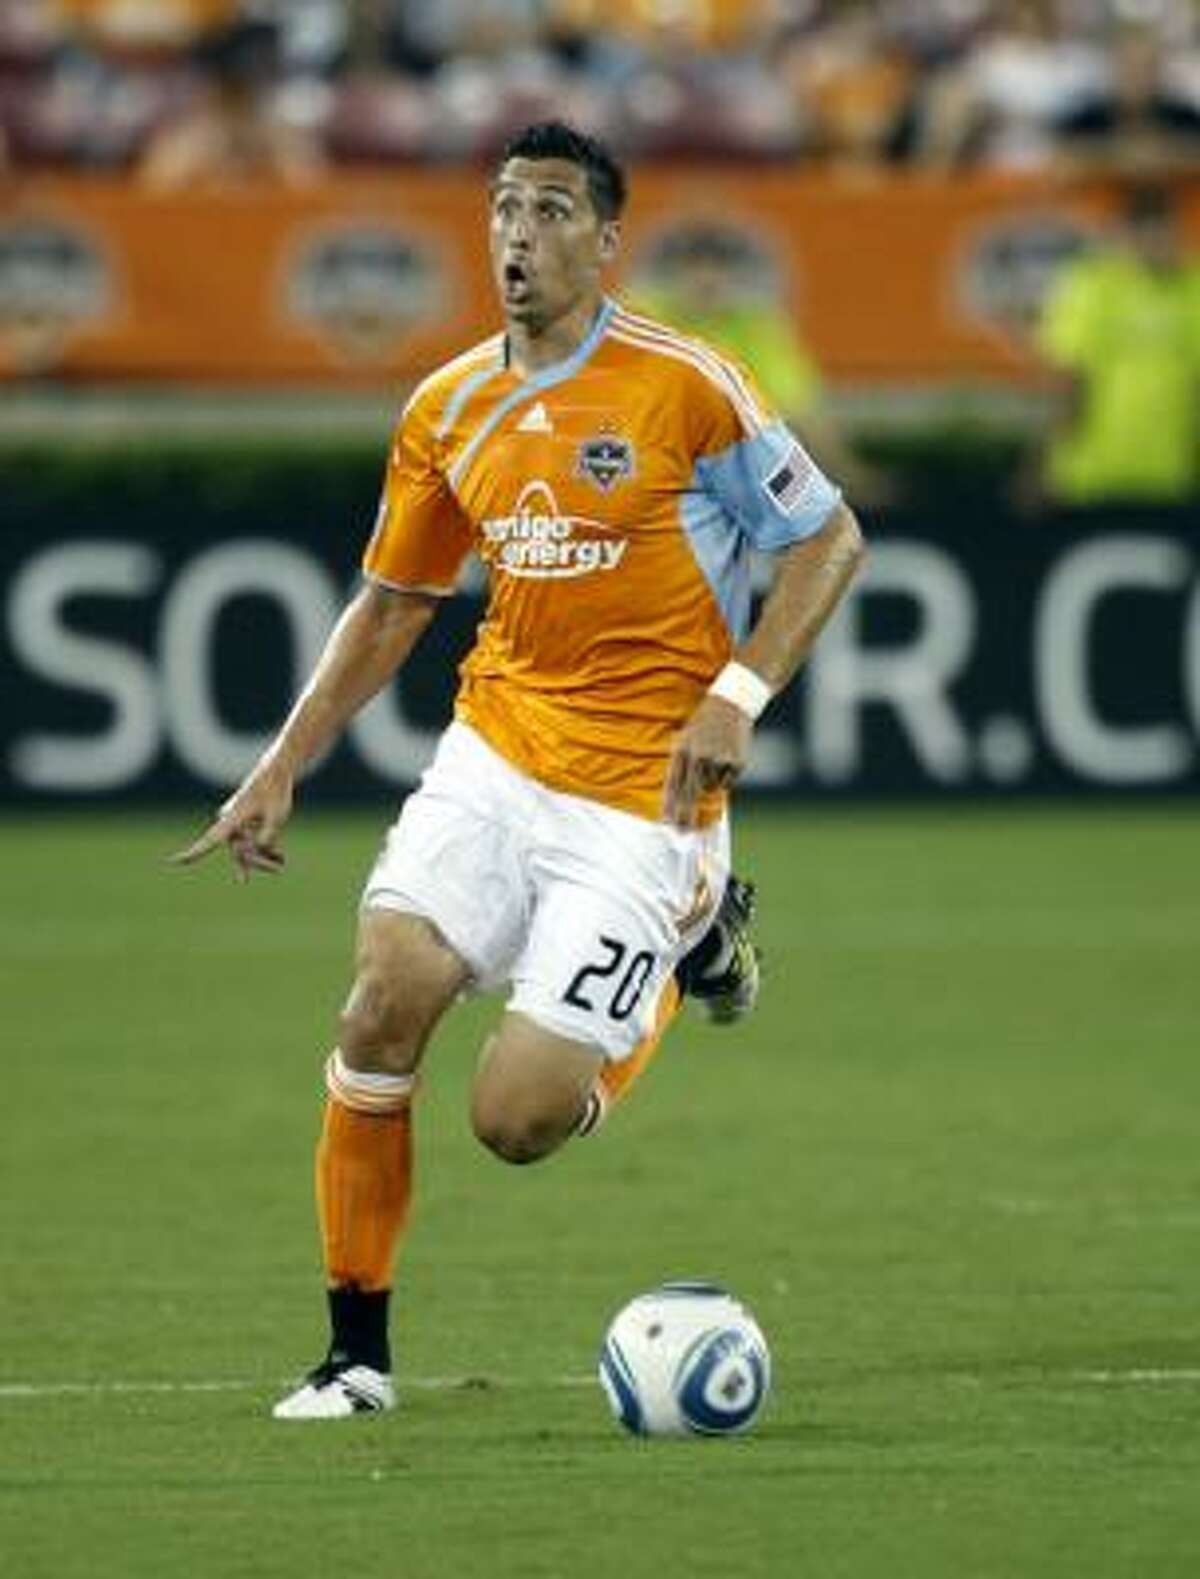 Sept. 18: Toronto FC 2, Dynamo 1 Dynamo midfielder Geoff Cameron brings the ball up the field against Toronto FC.